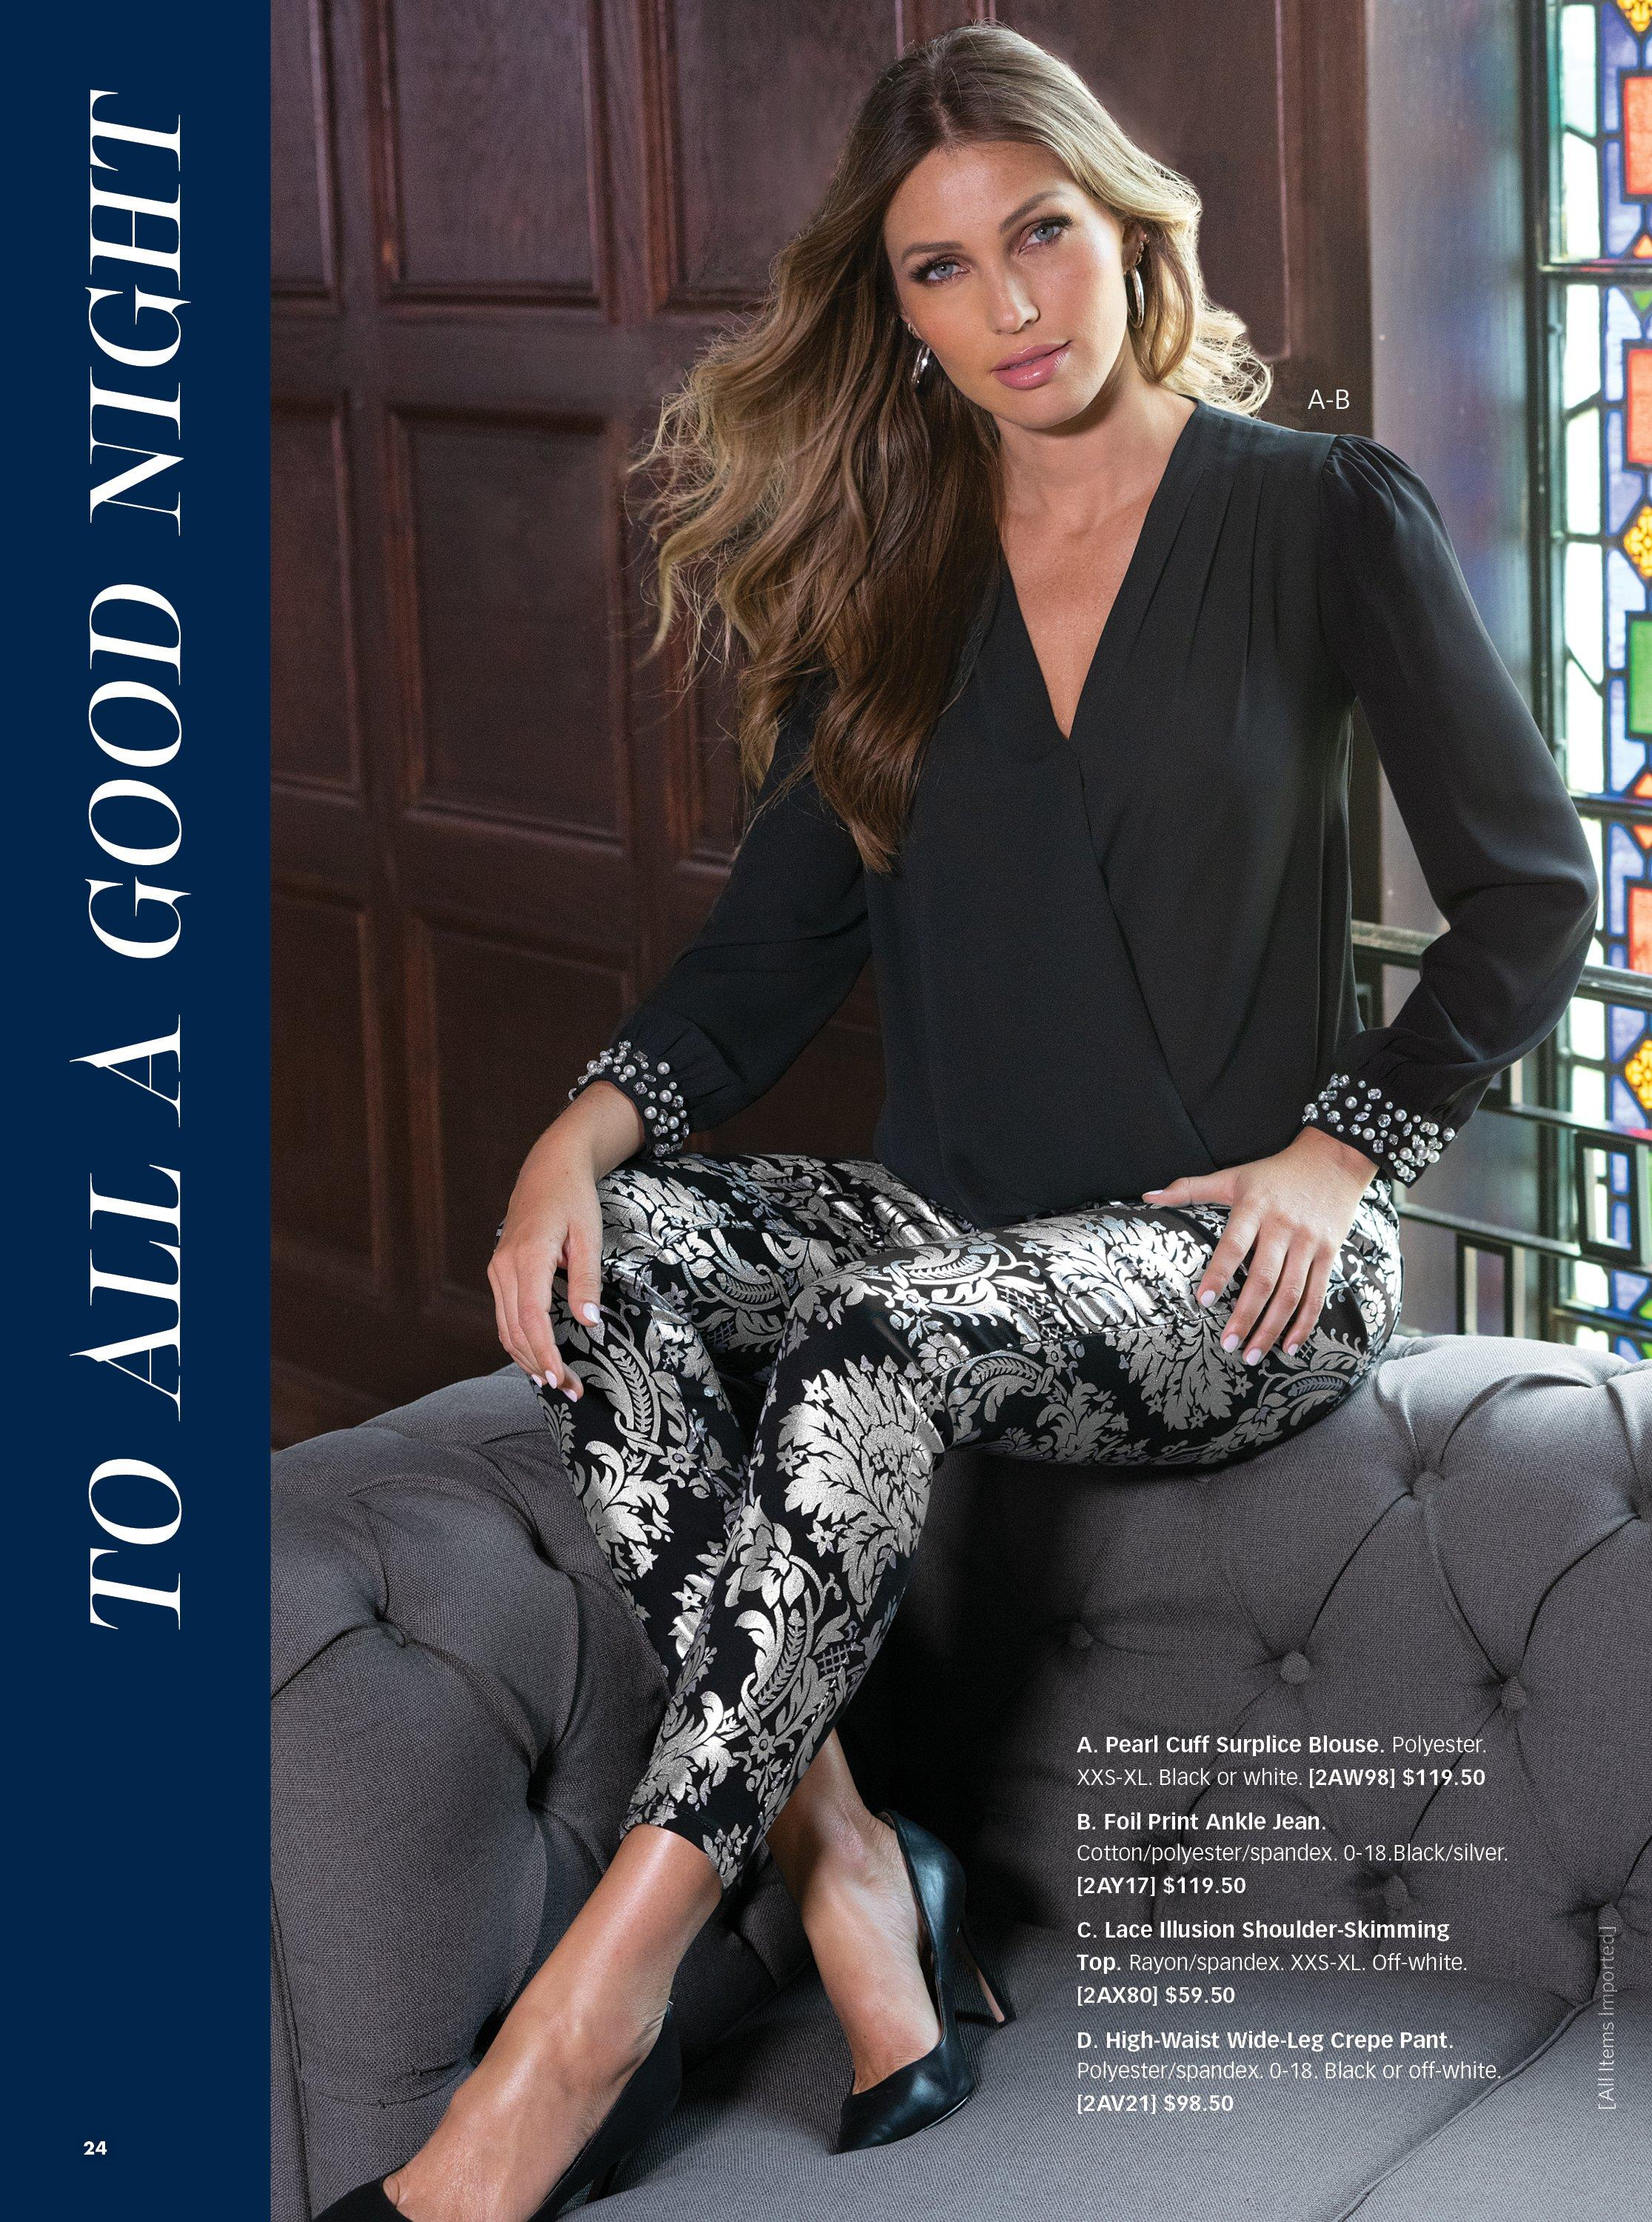 model wearing a black surplice top with embellished cuffs, silver and black foil printed jeans, and black pumps.